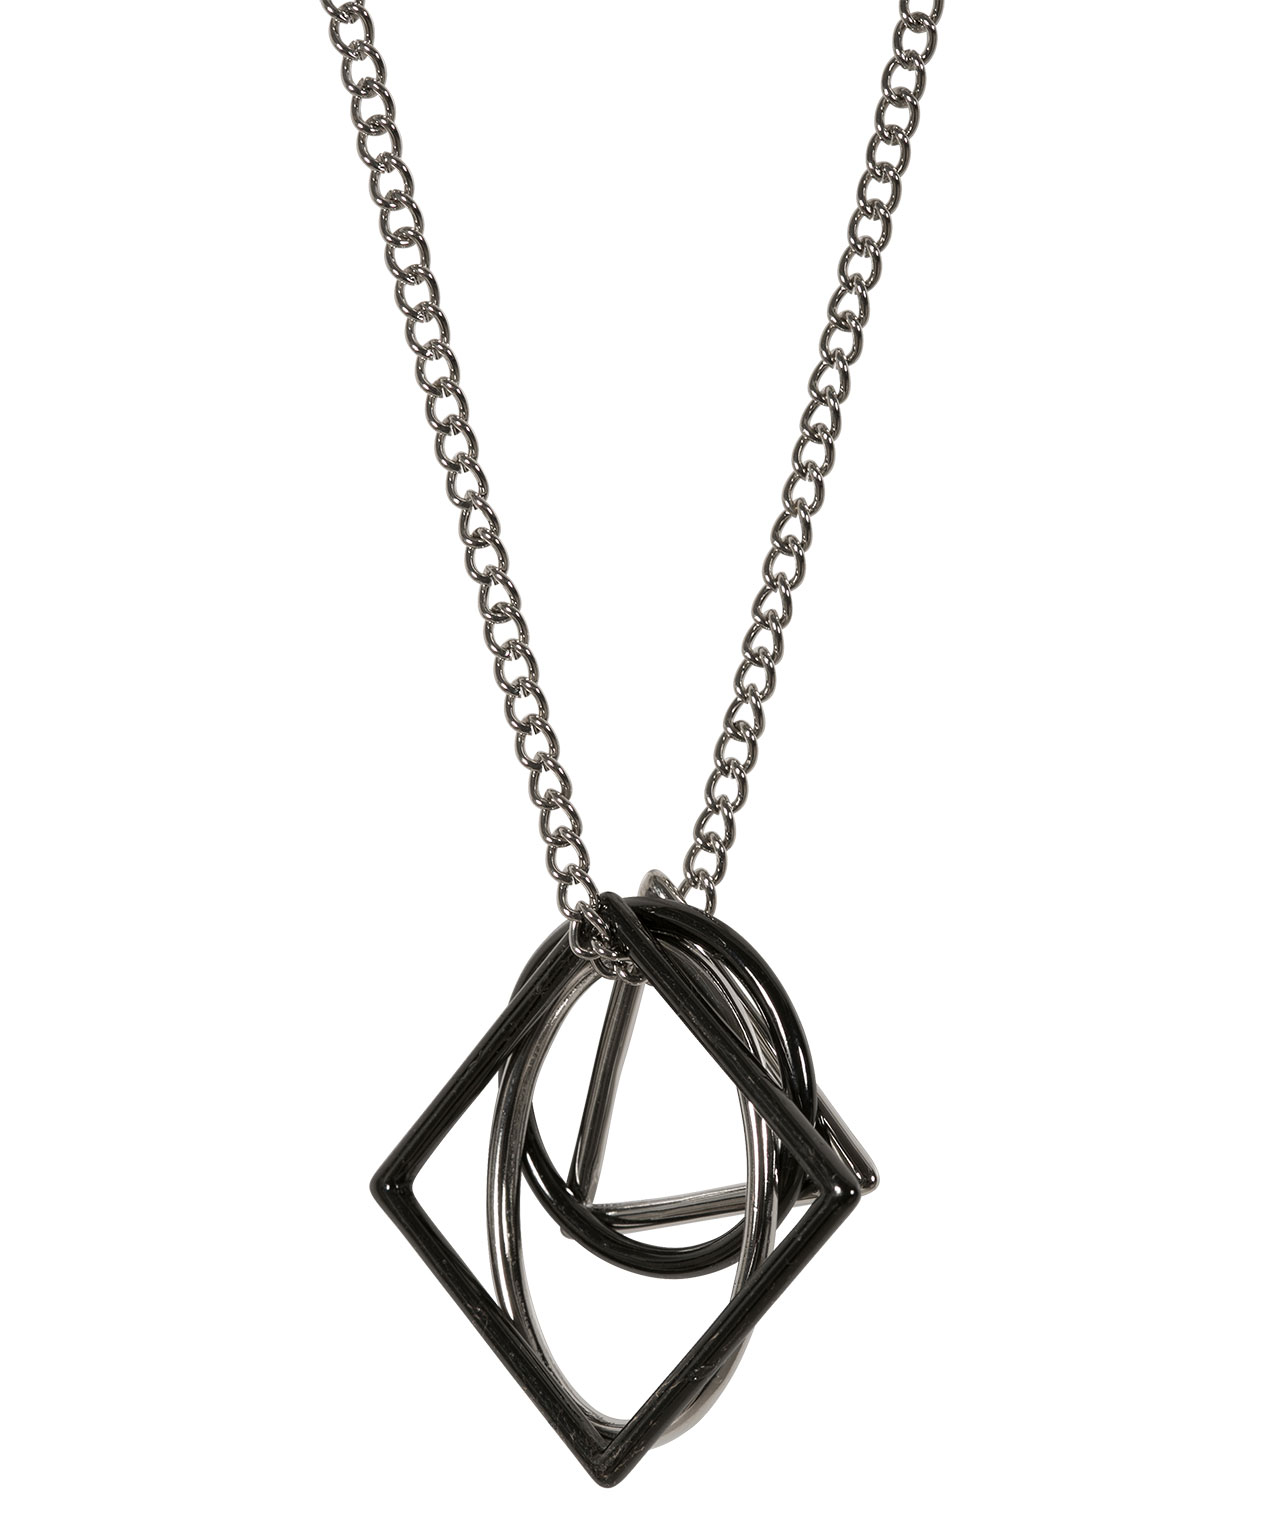 Geometric shapes pendant necklace rickis geometric shapes pendant necklace rhodiumhematite hi res mozeypictures Gallery